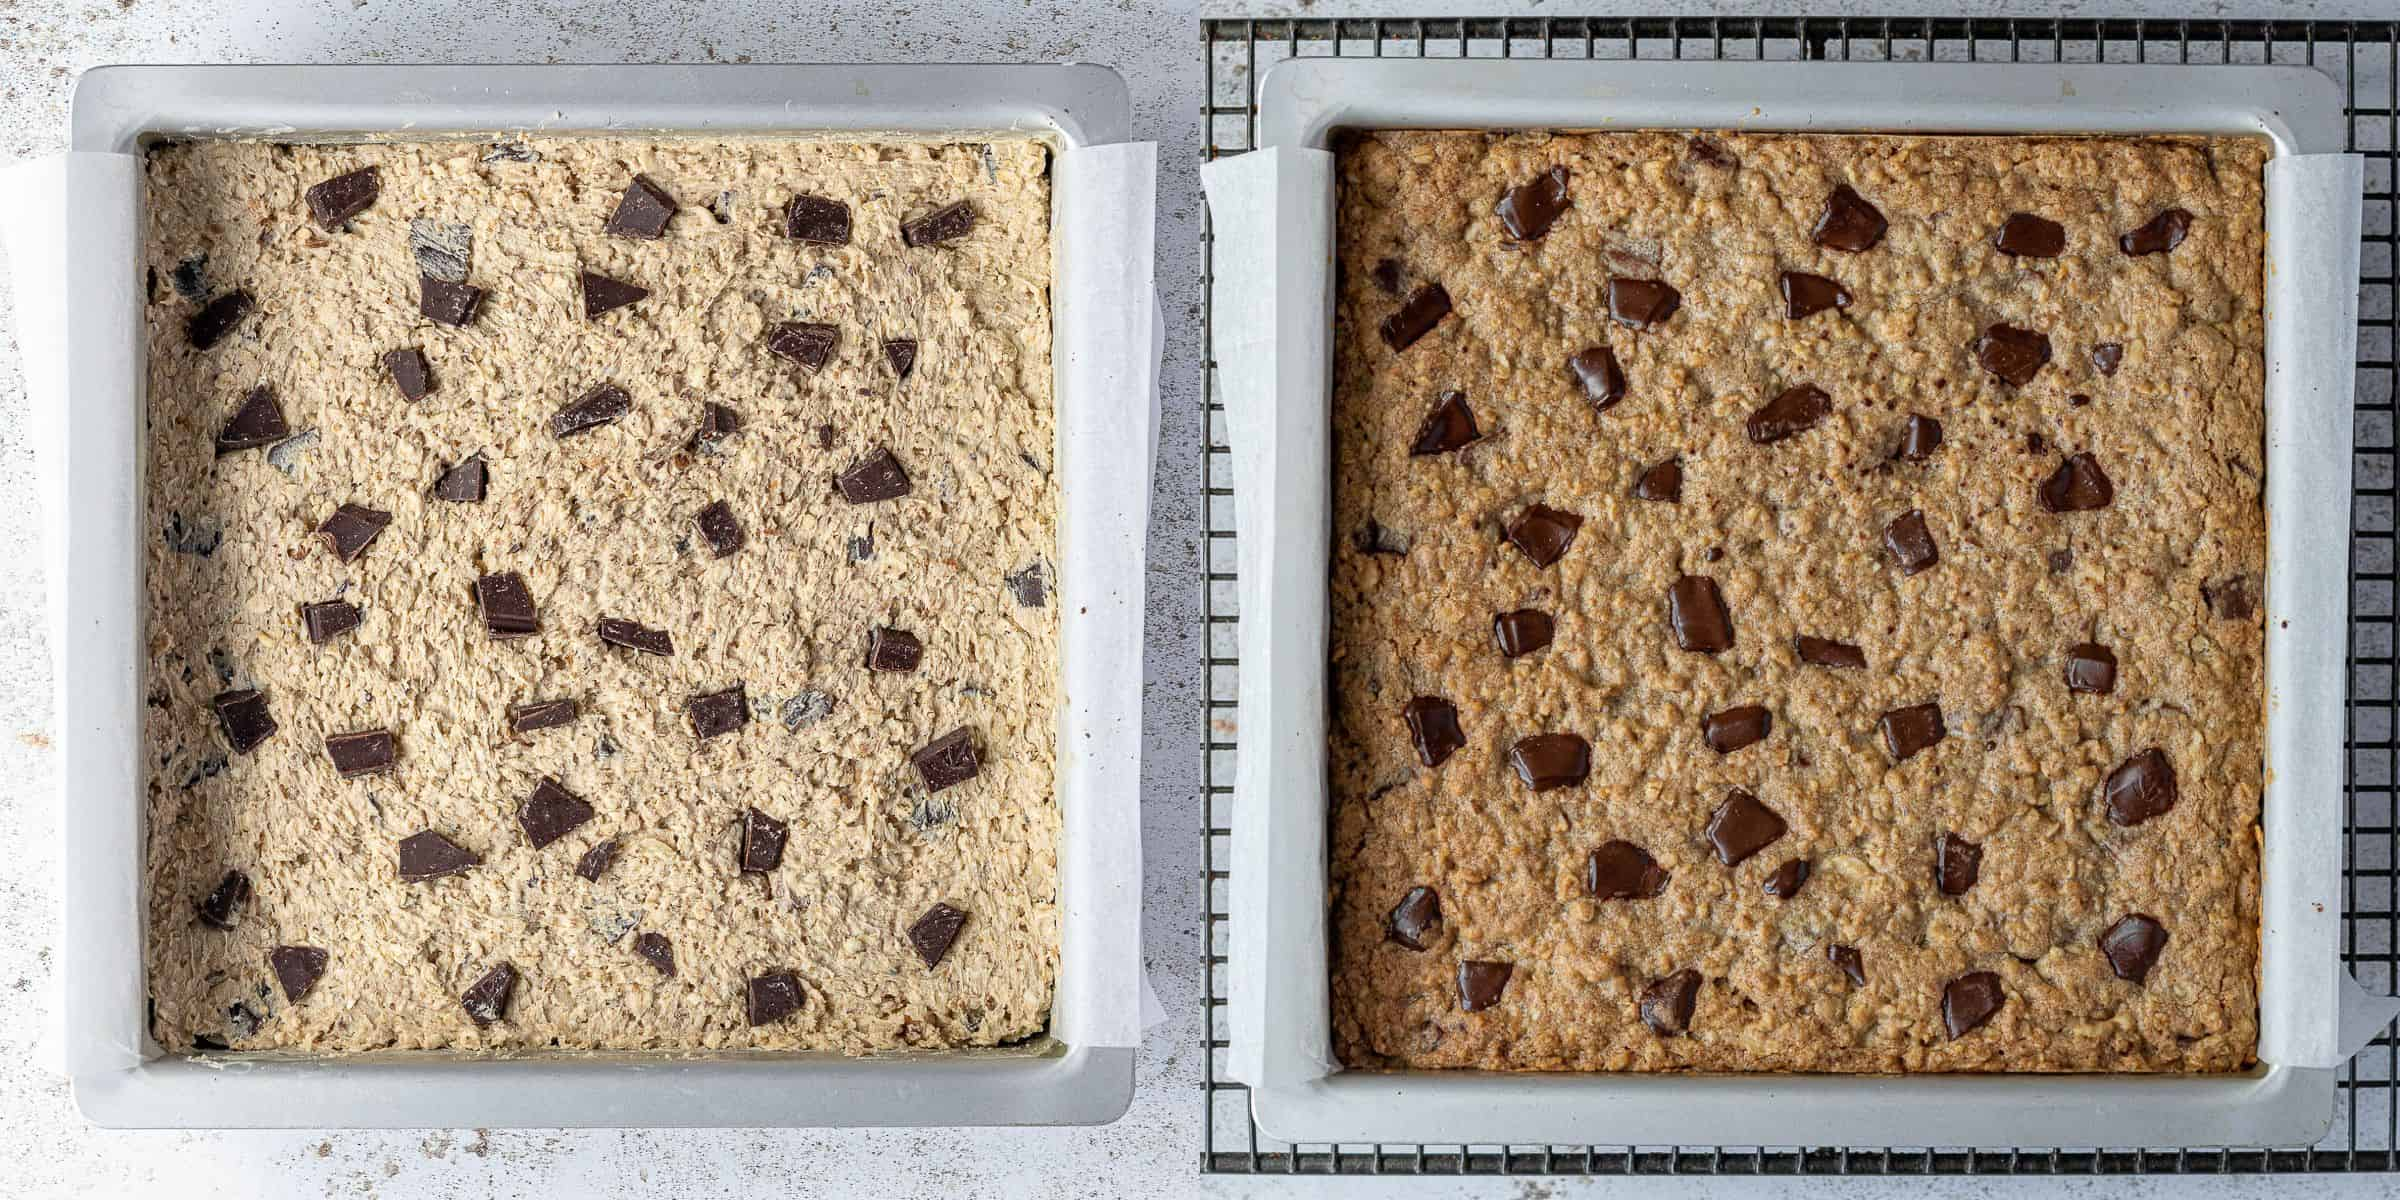 Step 4, a two image collage of the bars before and after baking.